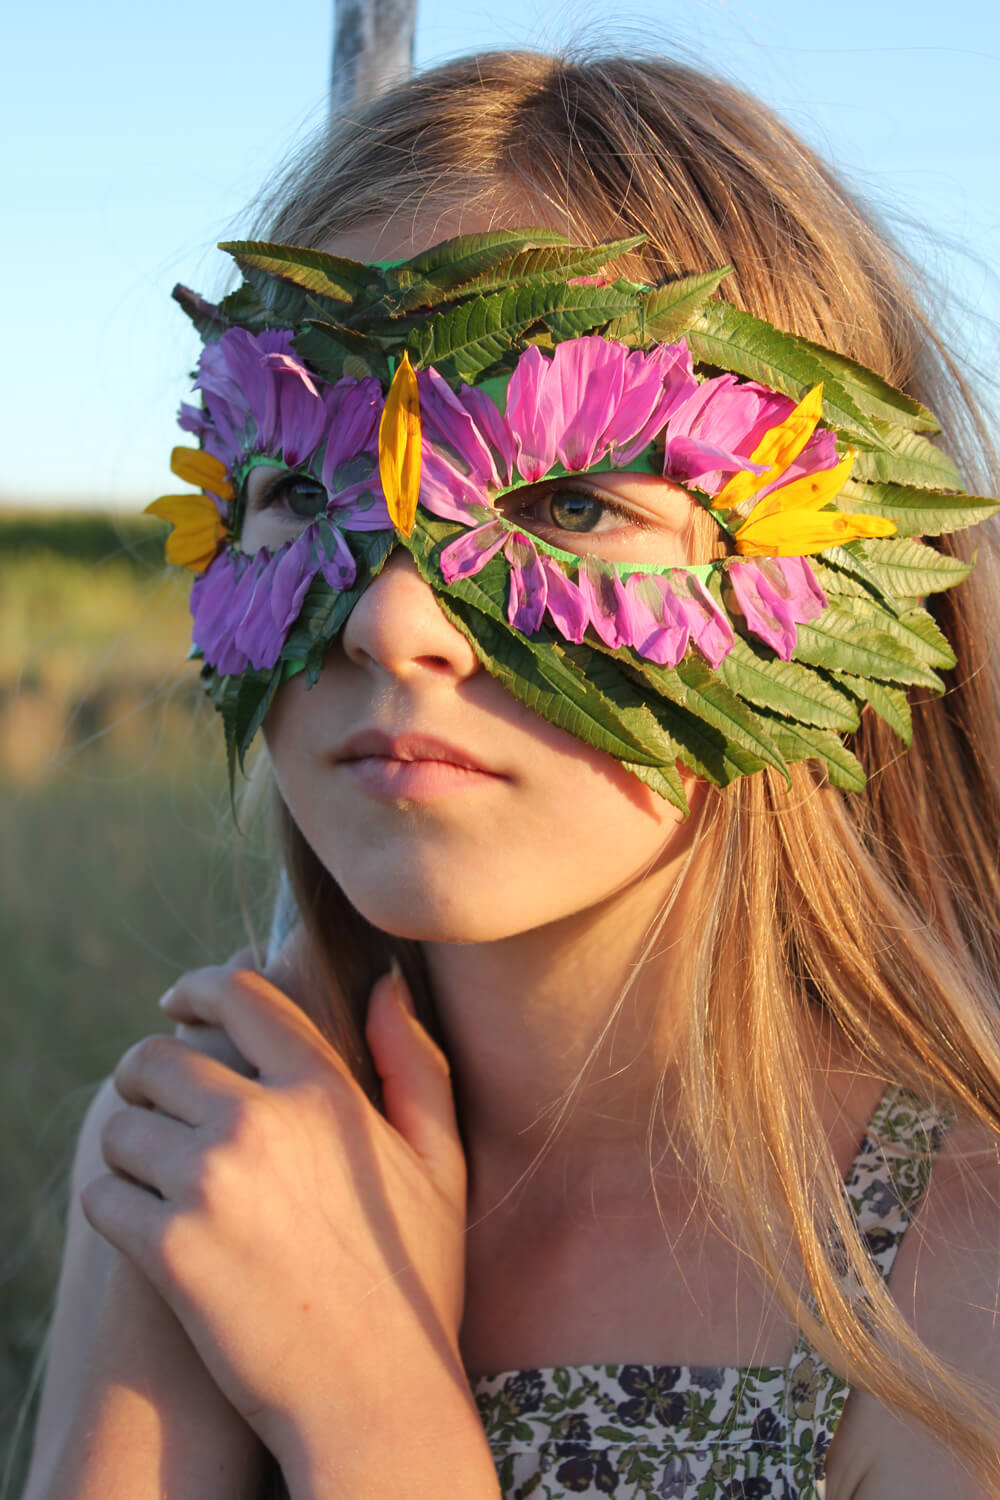 A mask can be made from leaves for minimal cost and effort